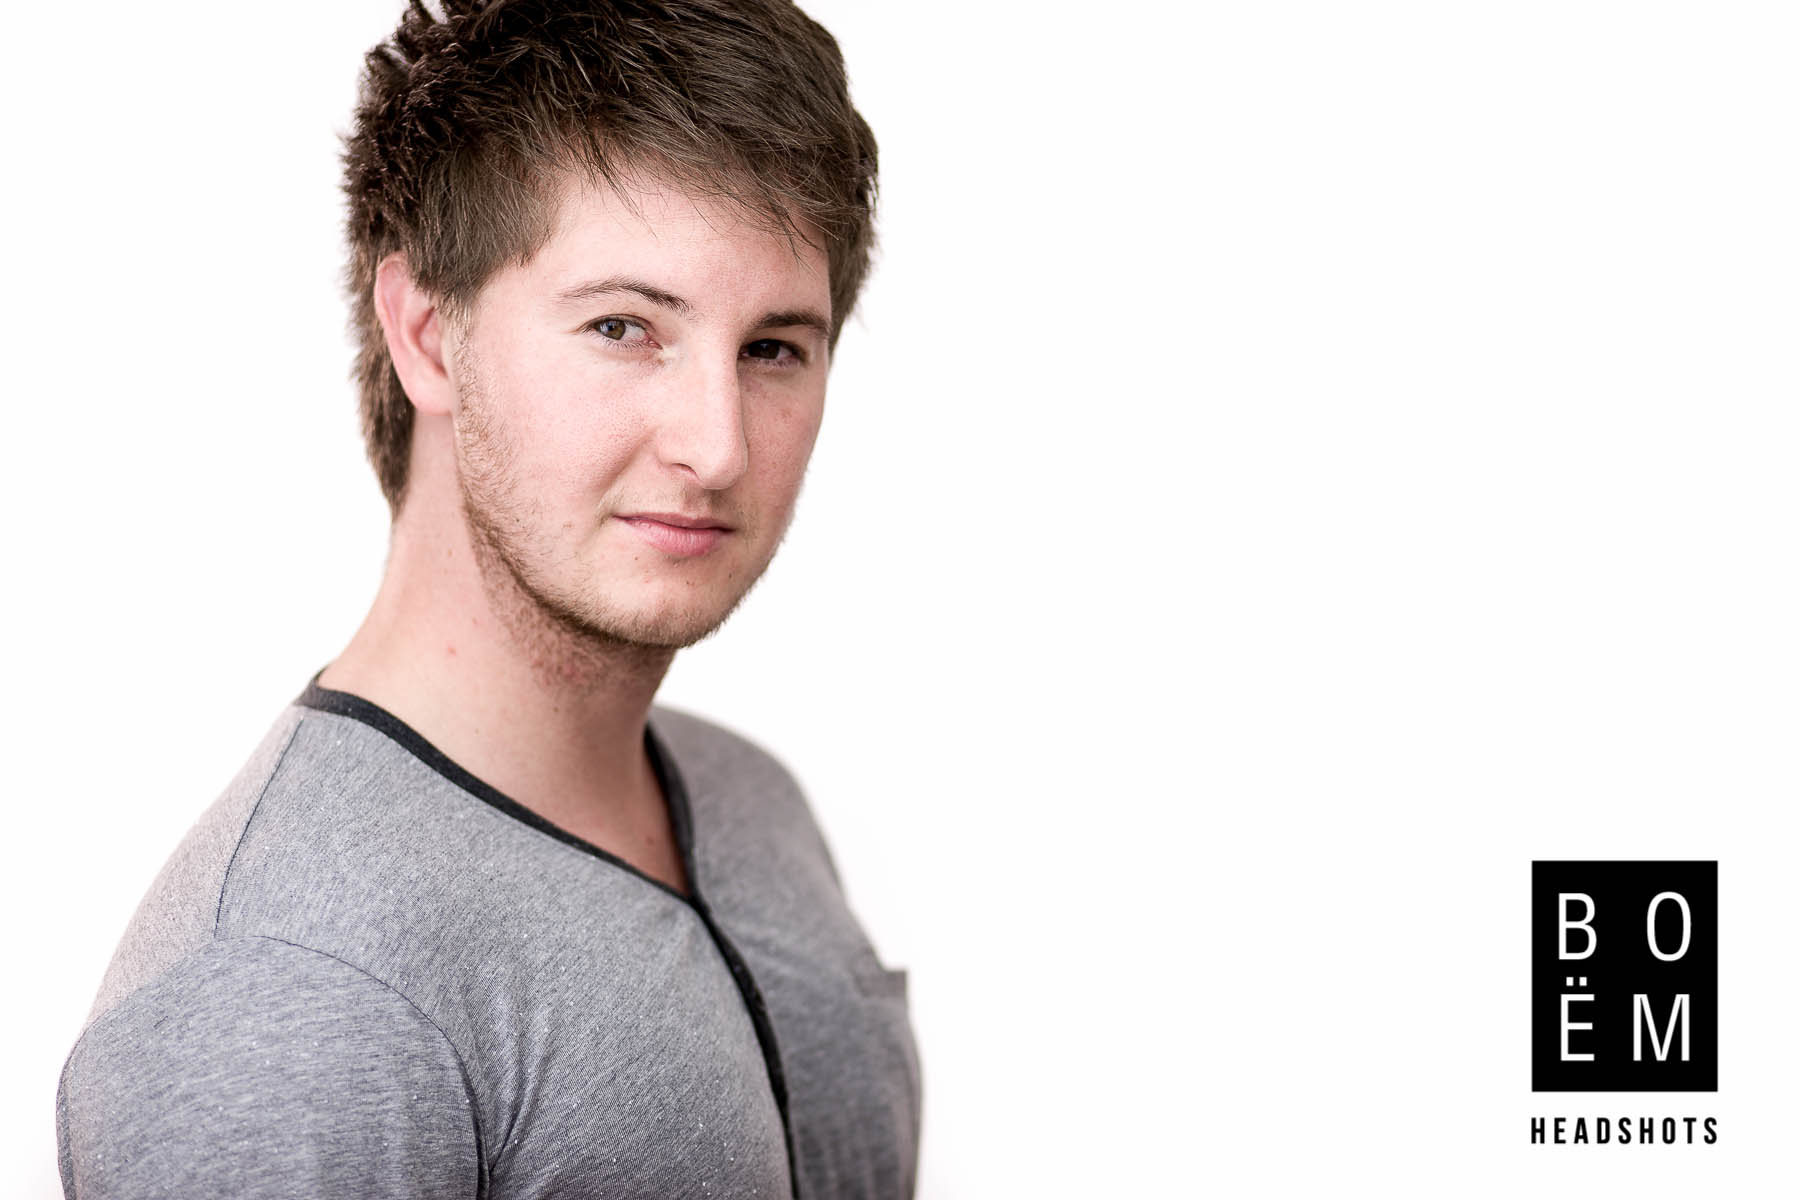 A preview of my professional headshot session for Aaron, an actor here in Adelaide.